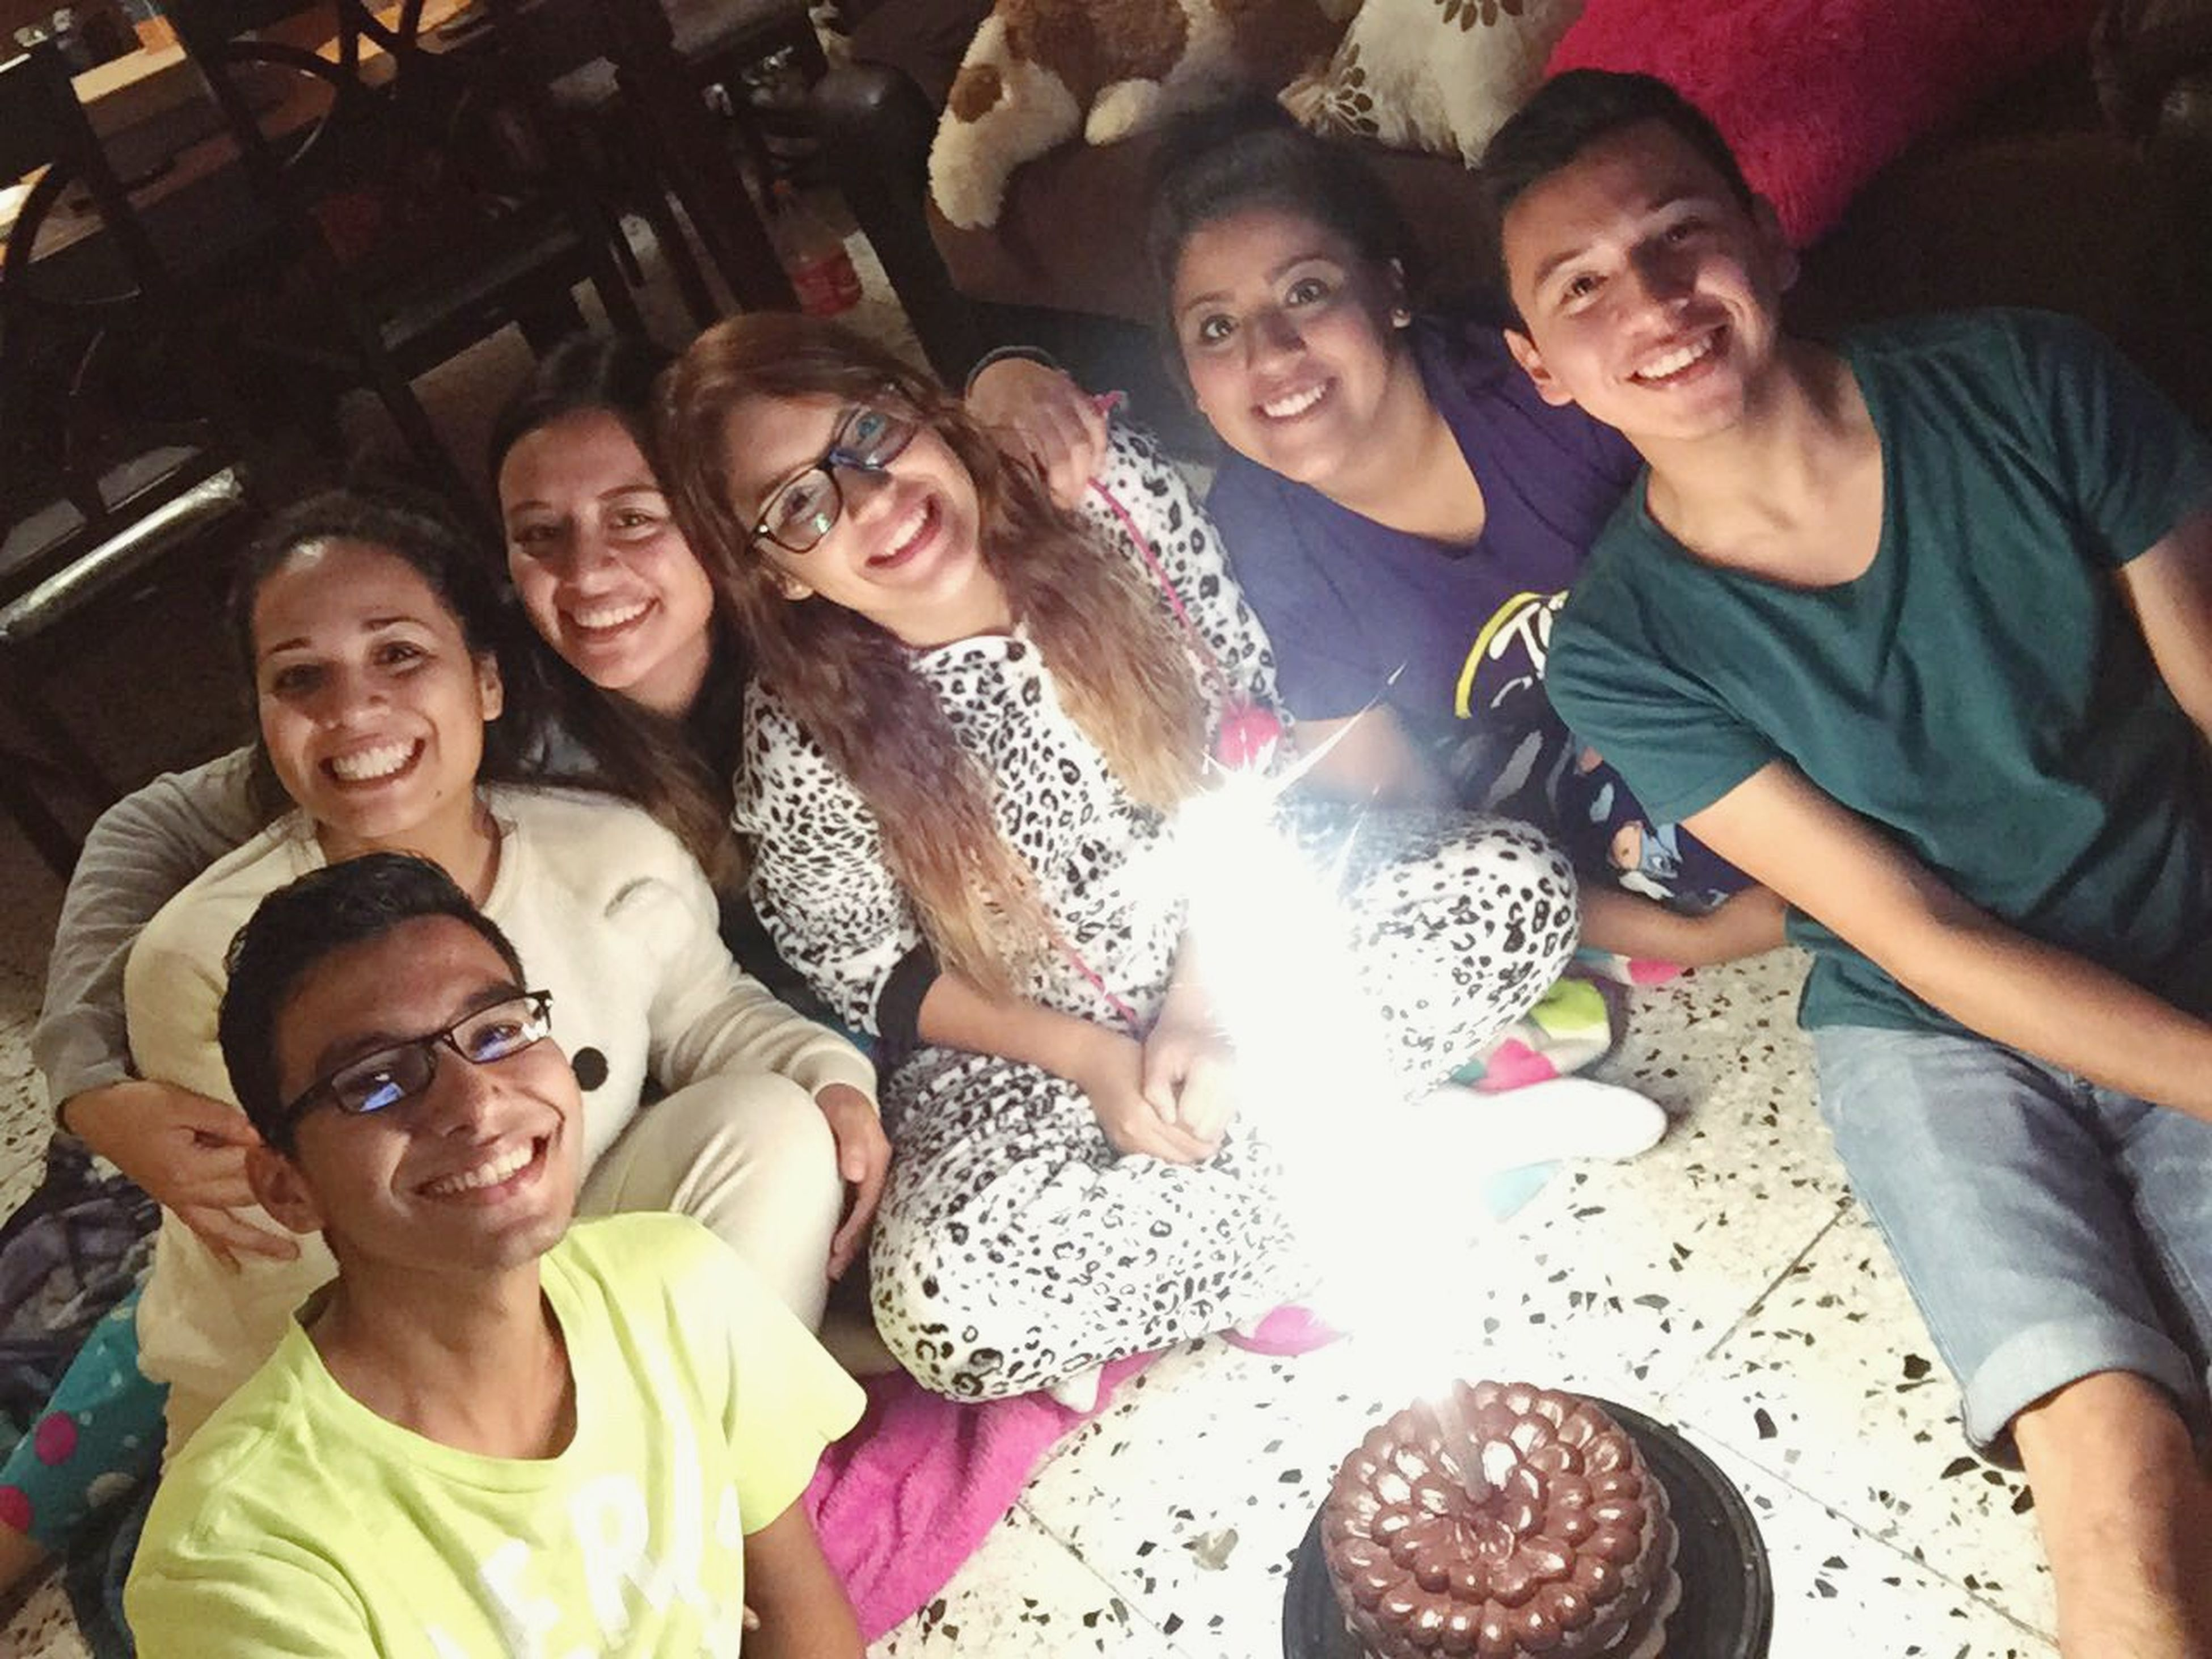 smiling, photography themes, child, lifestyles, girls, selfie, cheerful, fun, togetherness, women, friendship, portrait, men, group of people, people, adult, happiness, indoors, young adult, self portrait